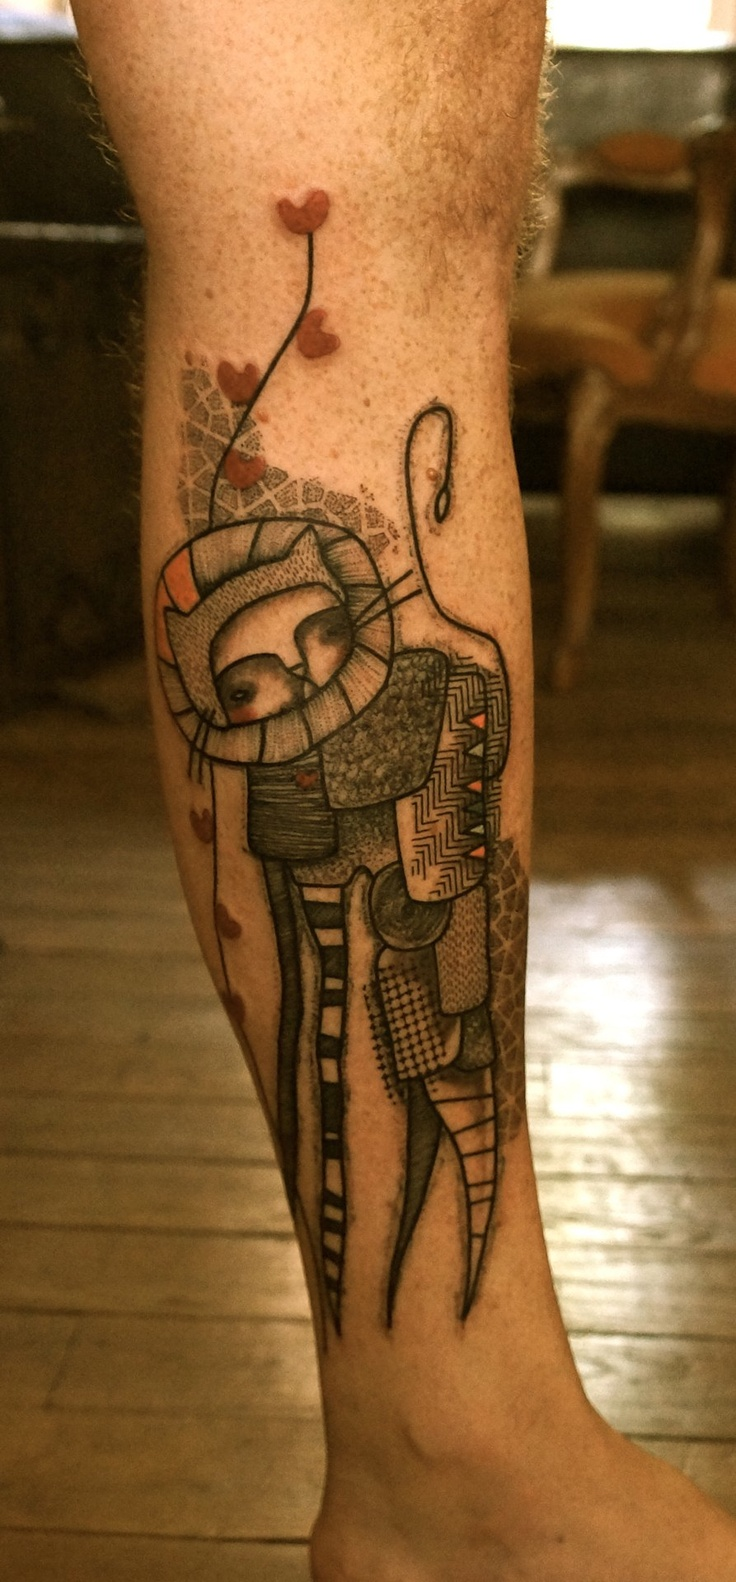 110 Best Abstract Tattoos Images On Pinterest Abstract Ideas And Designs